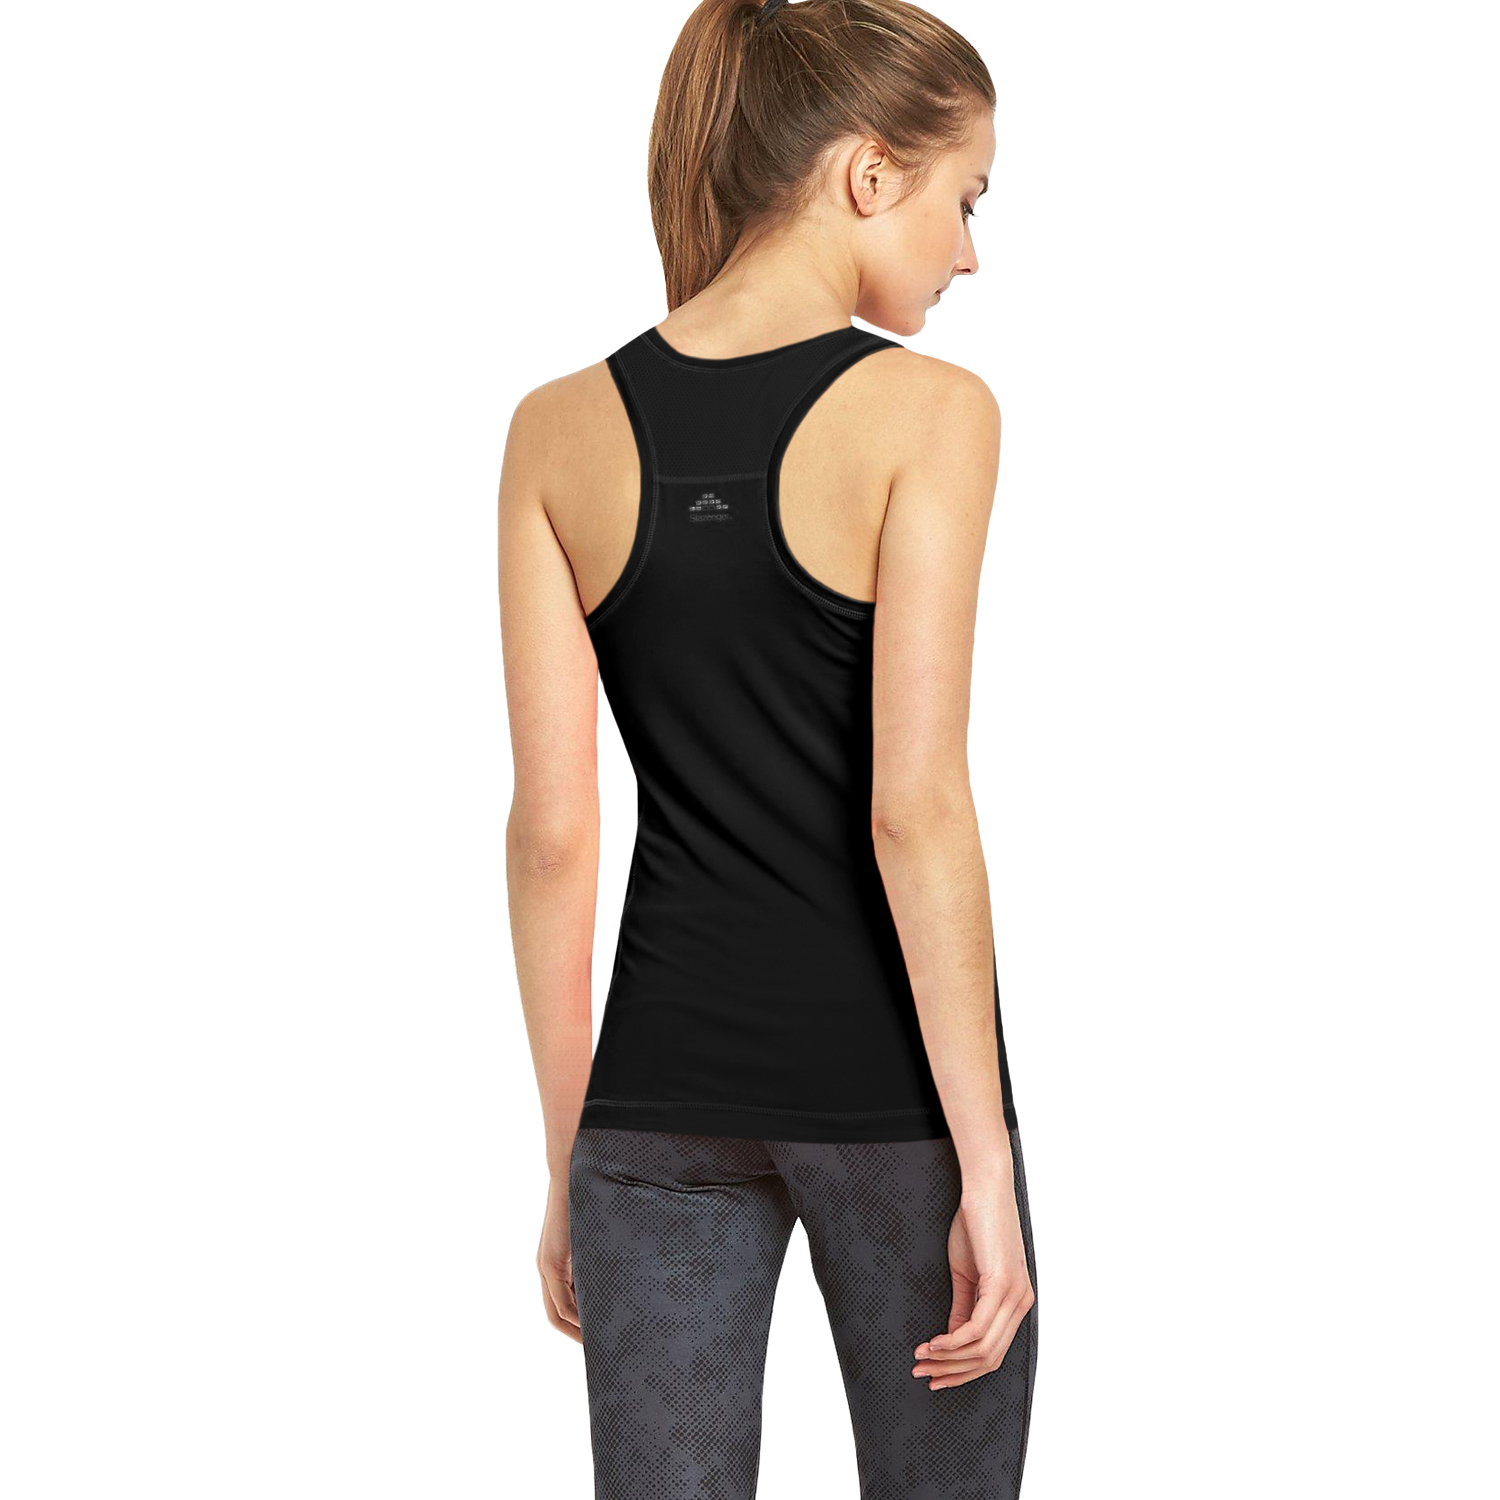 Shop for womens black sleeveless vest online at Target. Free shipping on purchases over $35 and save 5% every day with your Target REDcard.